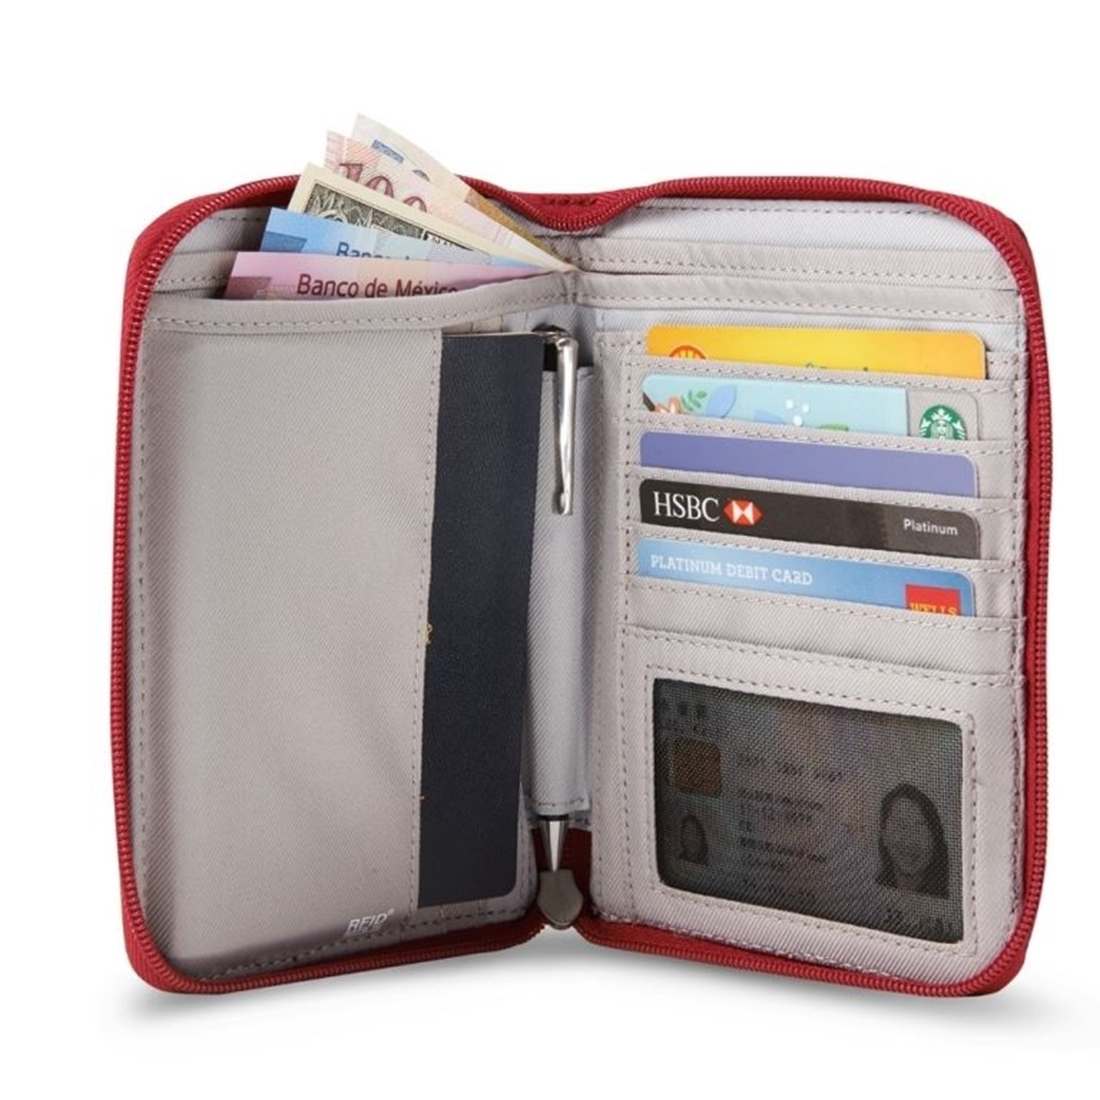 Pacsafe RFIDsafe W150 Travel Organiser - Open with cards and money placed inside